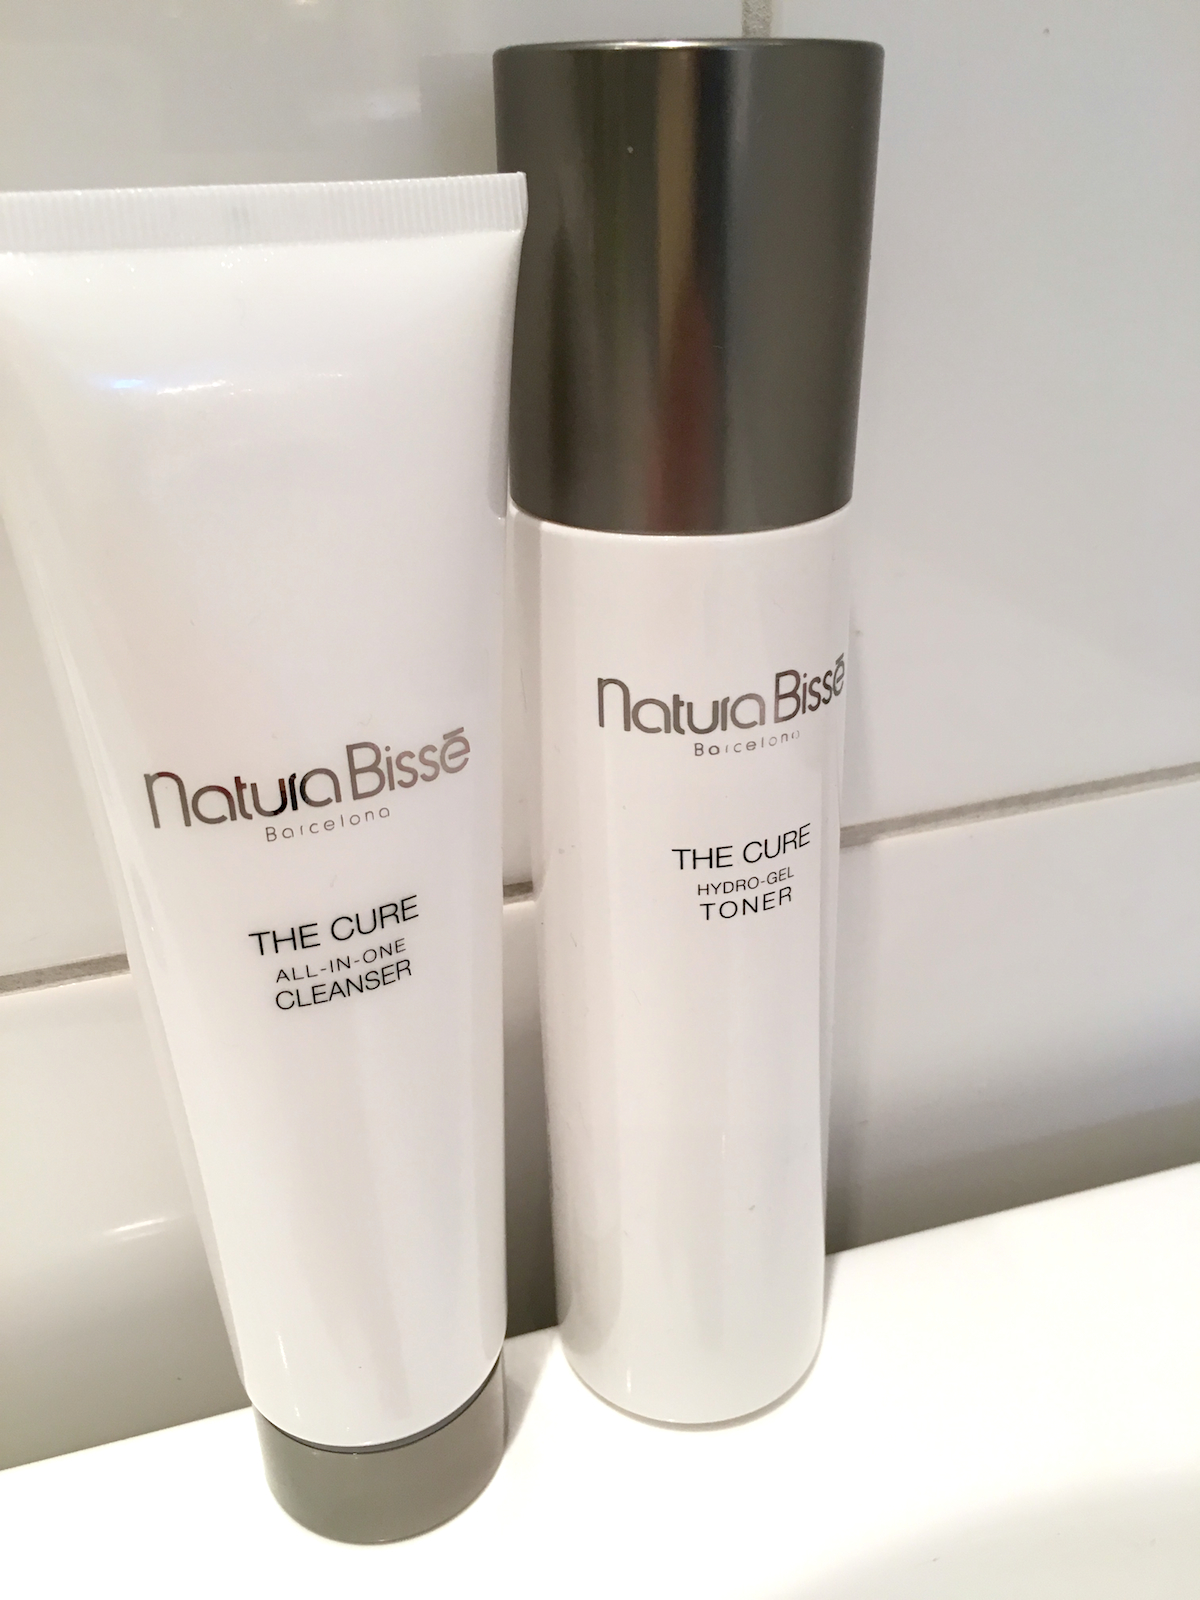 Natura Bisse the cure cleanser duo|skonhetssnack.se